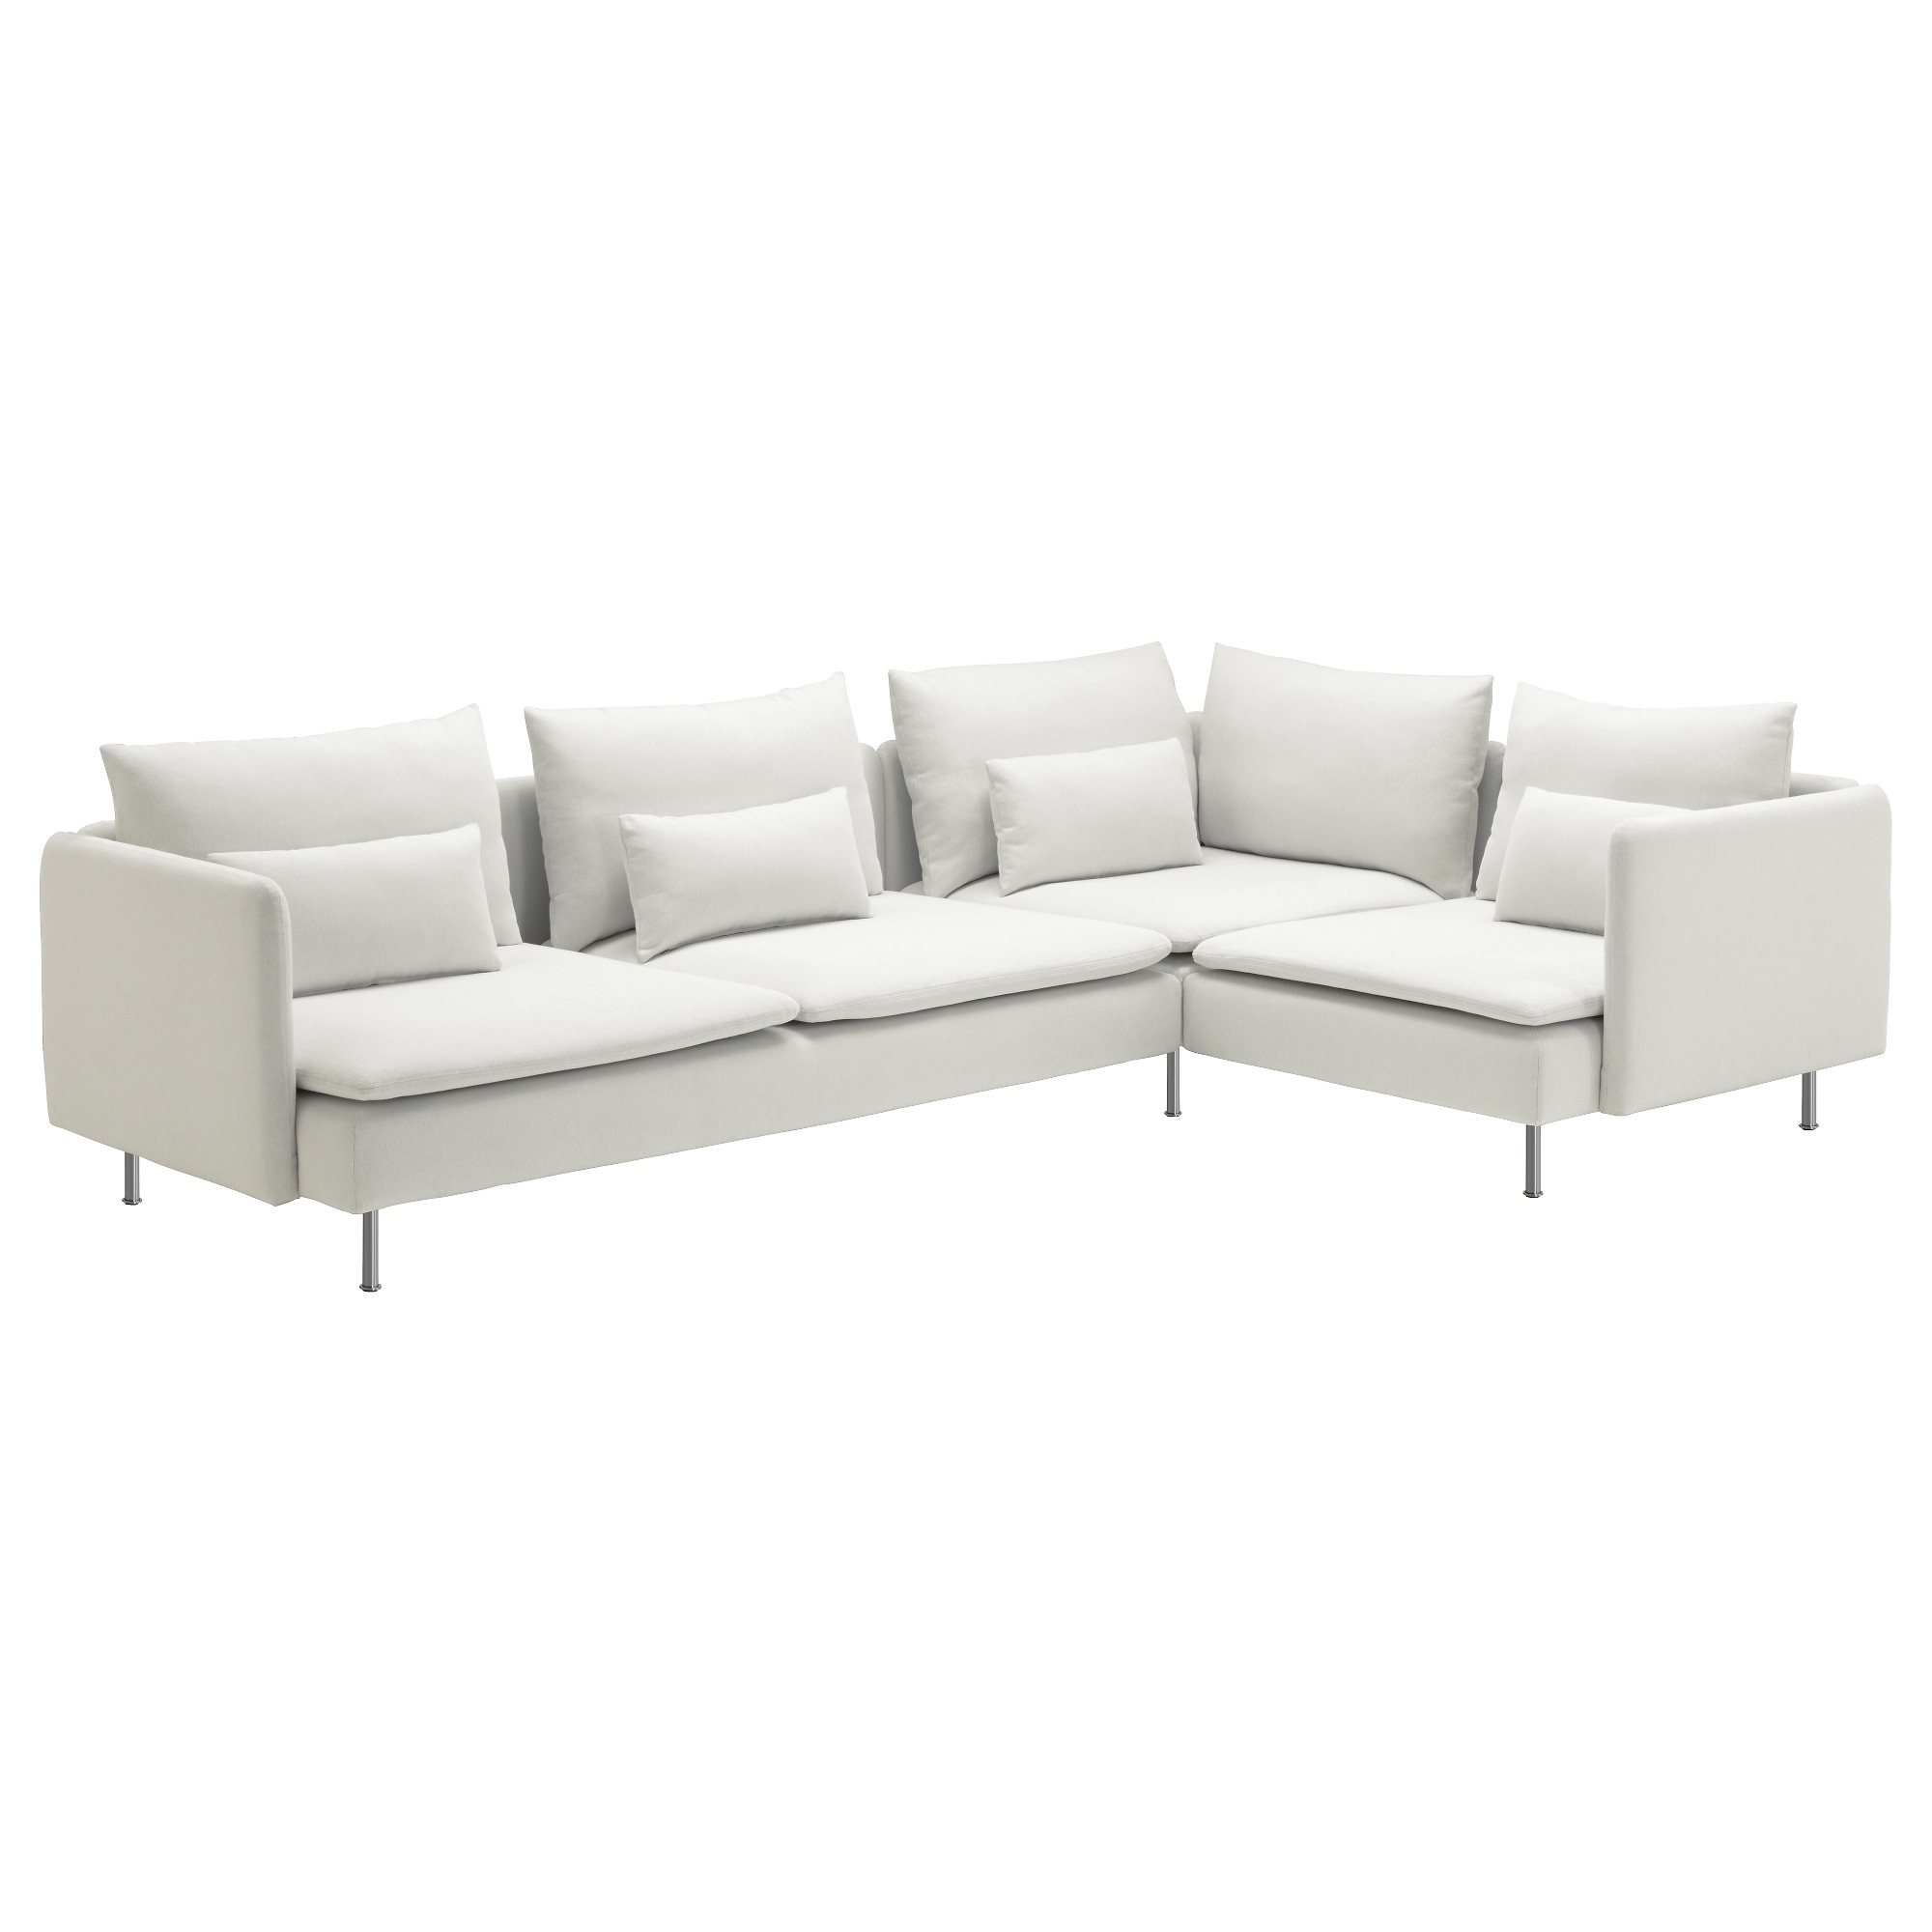 Most Recent Söderhamn Sectional, 4 Seat Corner – Samsta Light Pink – Ikea For 4 Seat Sofas (View 15 of 15)